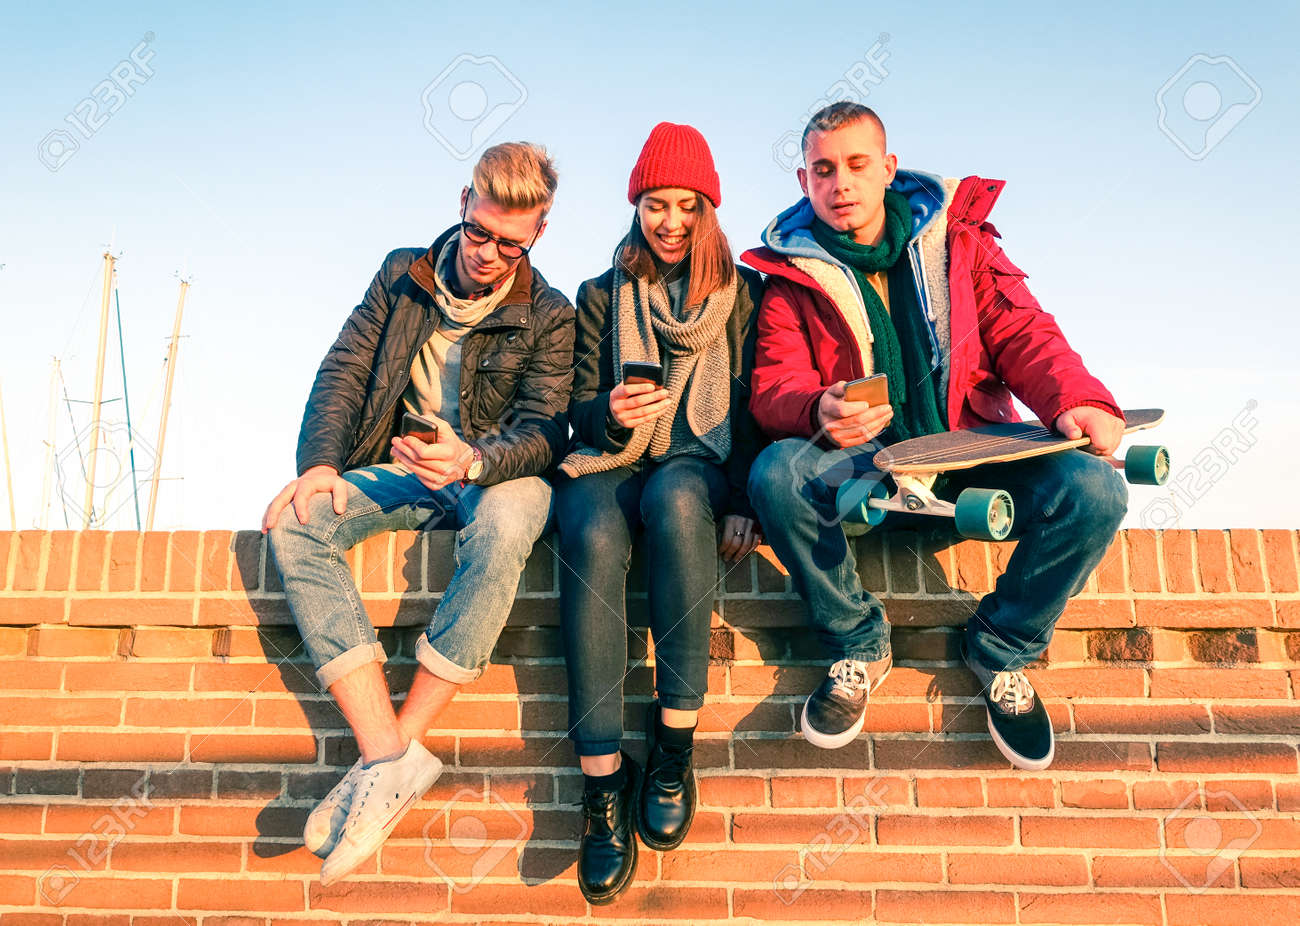 Group of friends using smartphone sitting on low briks wall - Young people addicted to mobile technology with disinterest talking each other - Teenagers holding telephone outdoor - Concept of leisure - 66154355